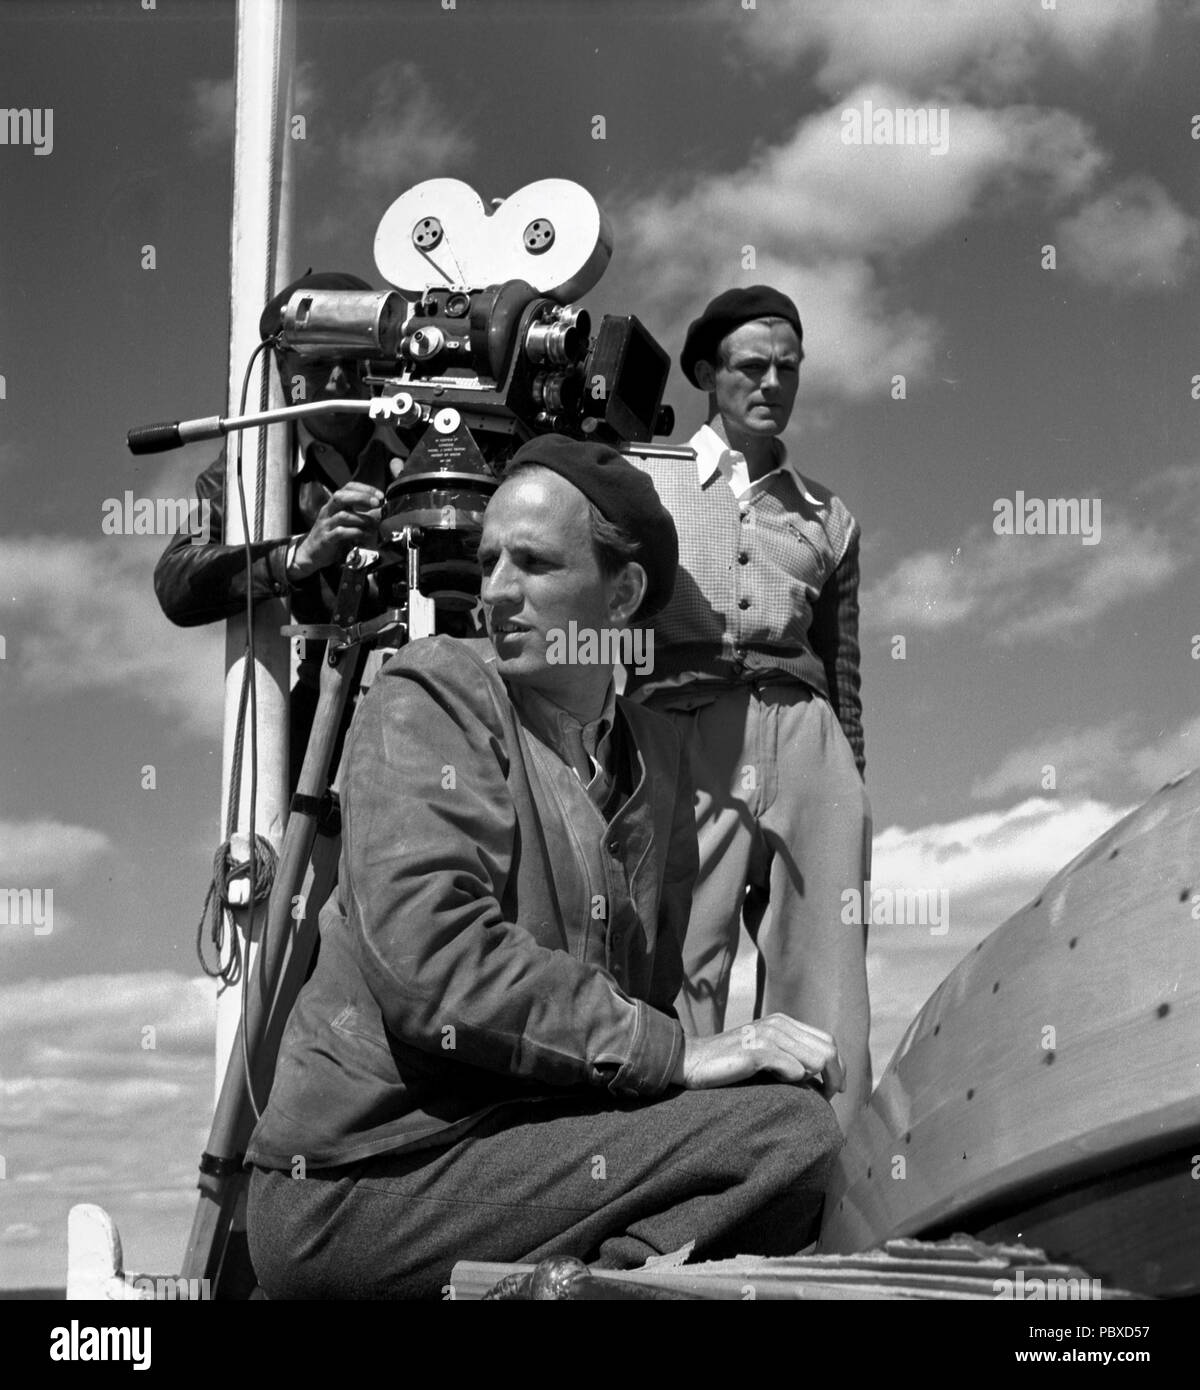 Ingmar Bergman. 1918-2007.  Swedish film director. Pictured here 1950 on the film set of the movie Summer Interlude. The film had premiere 1951. Photographer: Kristoffersson/az32/11 - Stock Image